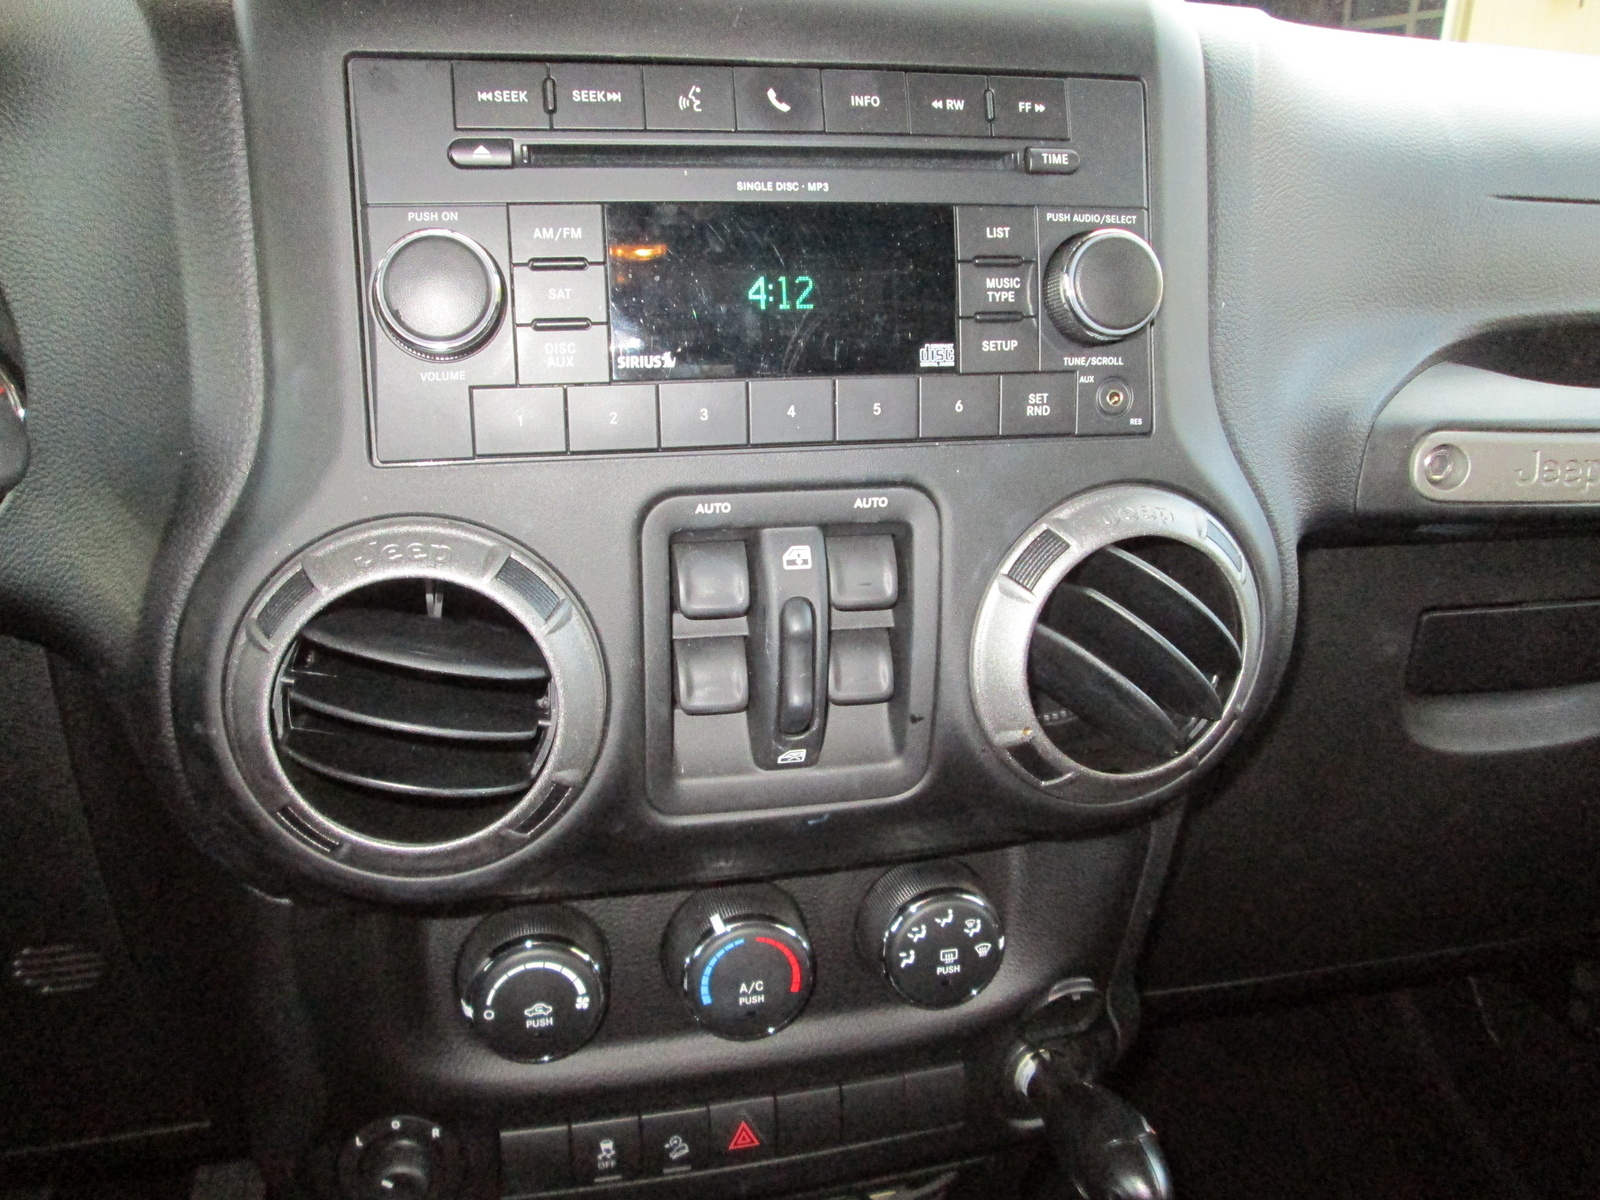 2011 Jeep Wrangler Unlimited Sport Interior Pictures To Pin On Pinterest Pinsdaddy